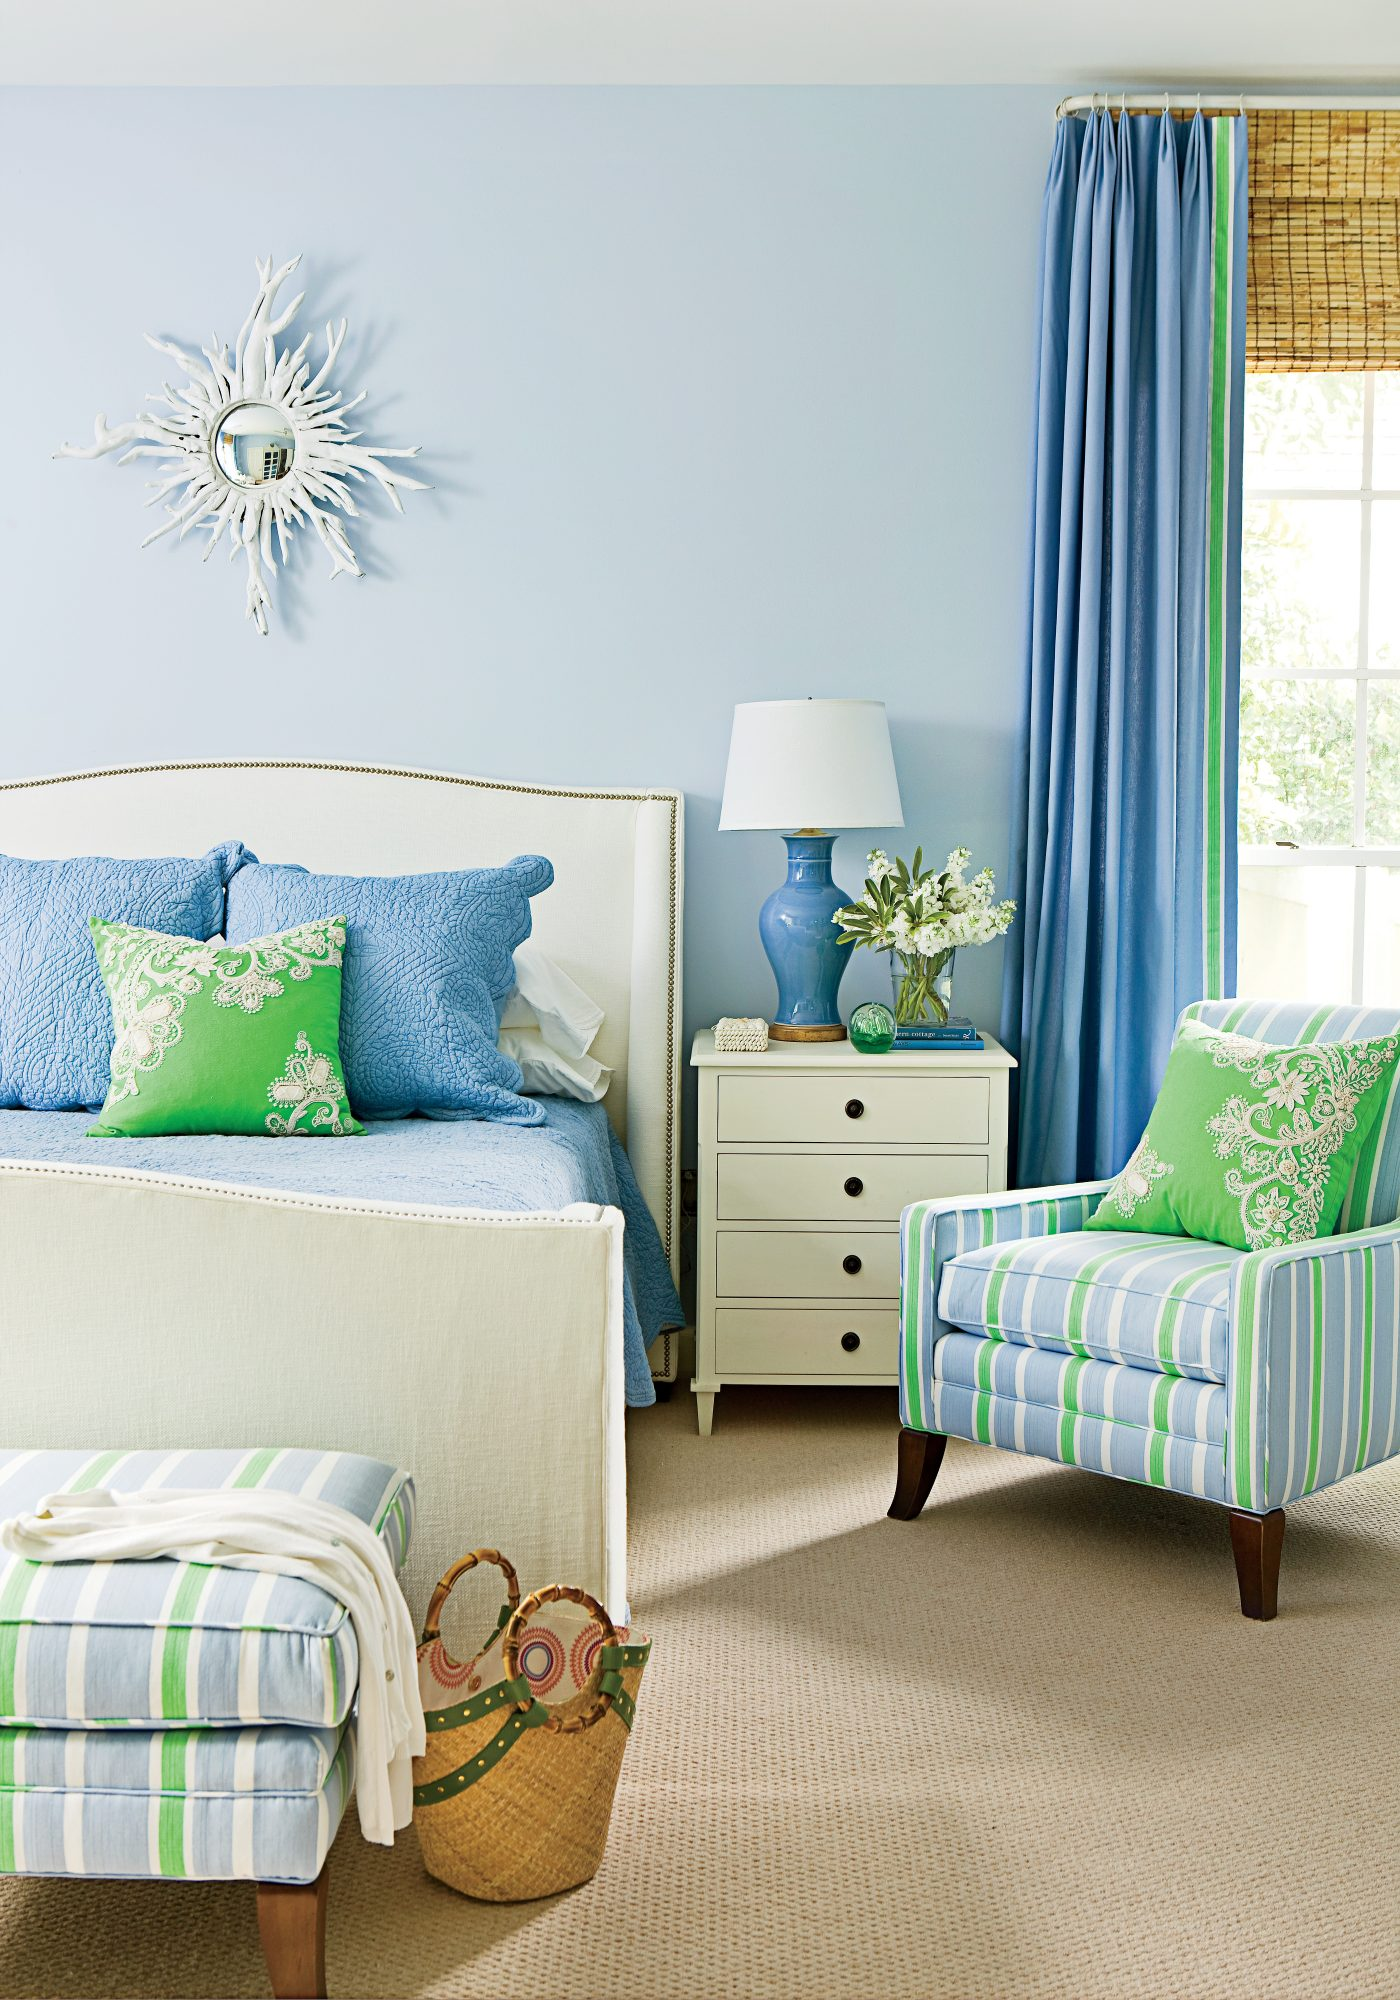 A lively green accent pillow was the inspiration for this Florida bedroom's pretty palette. (See more of this pretty beach house.) With an eye to toning down the vivid neon hue, designer Phoebe Howard introduced calming shades of white and a mix of lighte